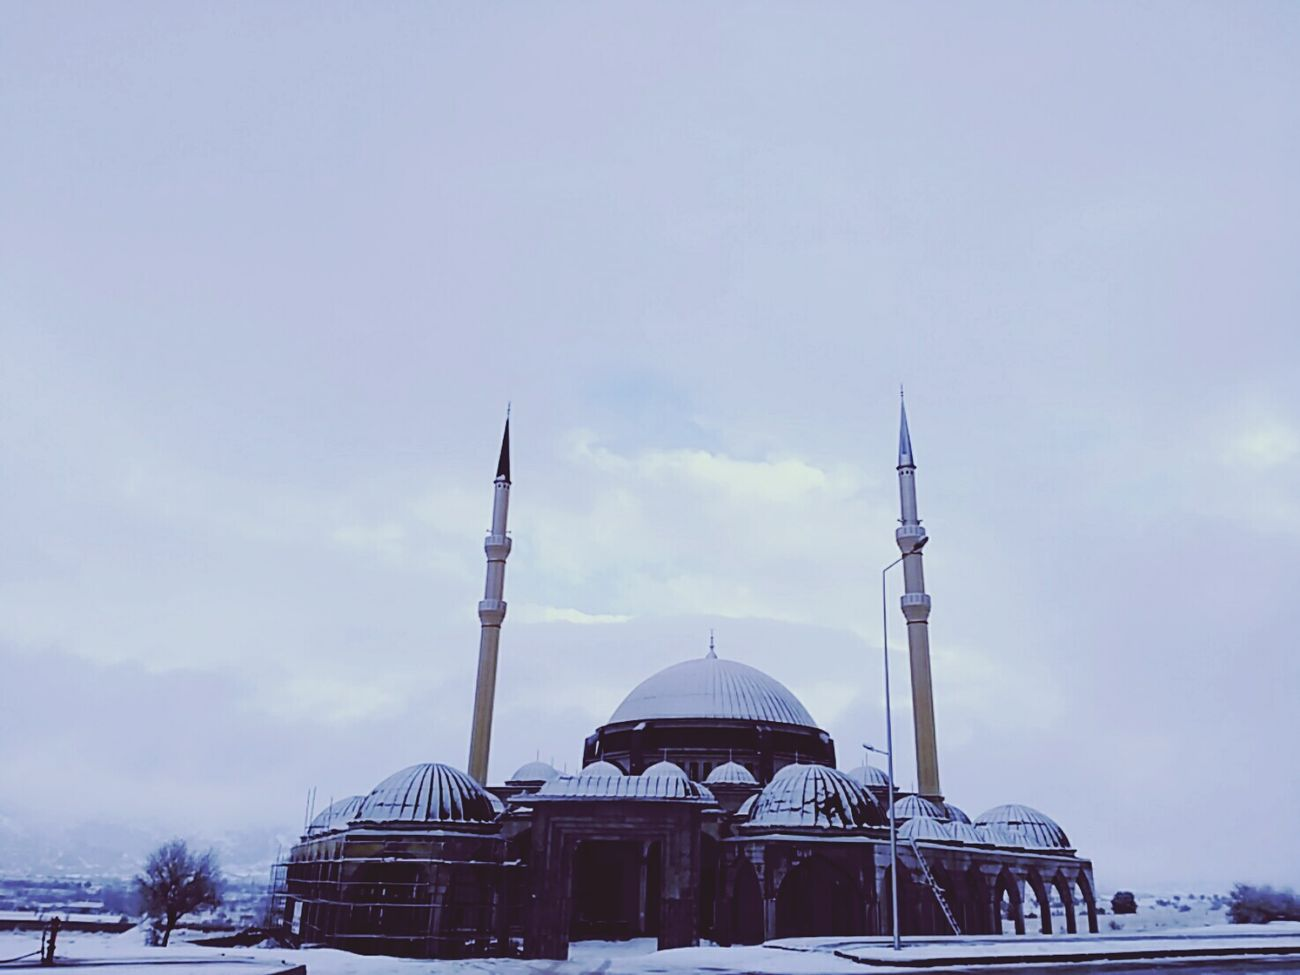 Sky Dome Tower Travel Destinations Architecture Place Of Worship Snow Outdoors No People City Day Astrology Sign Mosque Turkey Universitesi Burdur Turkey Kar Turkeyphotooftheday Weather Extreme Weather Winter